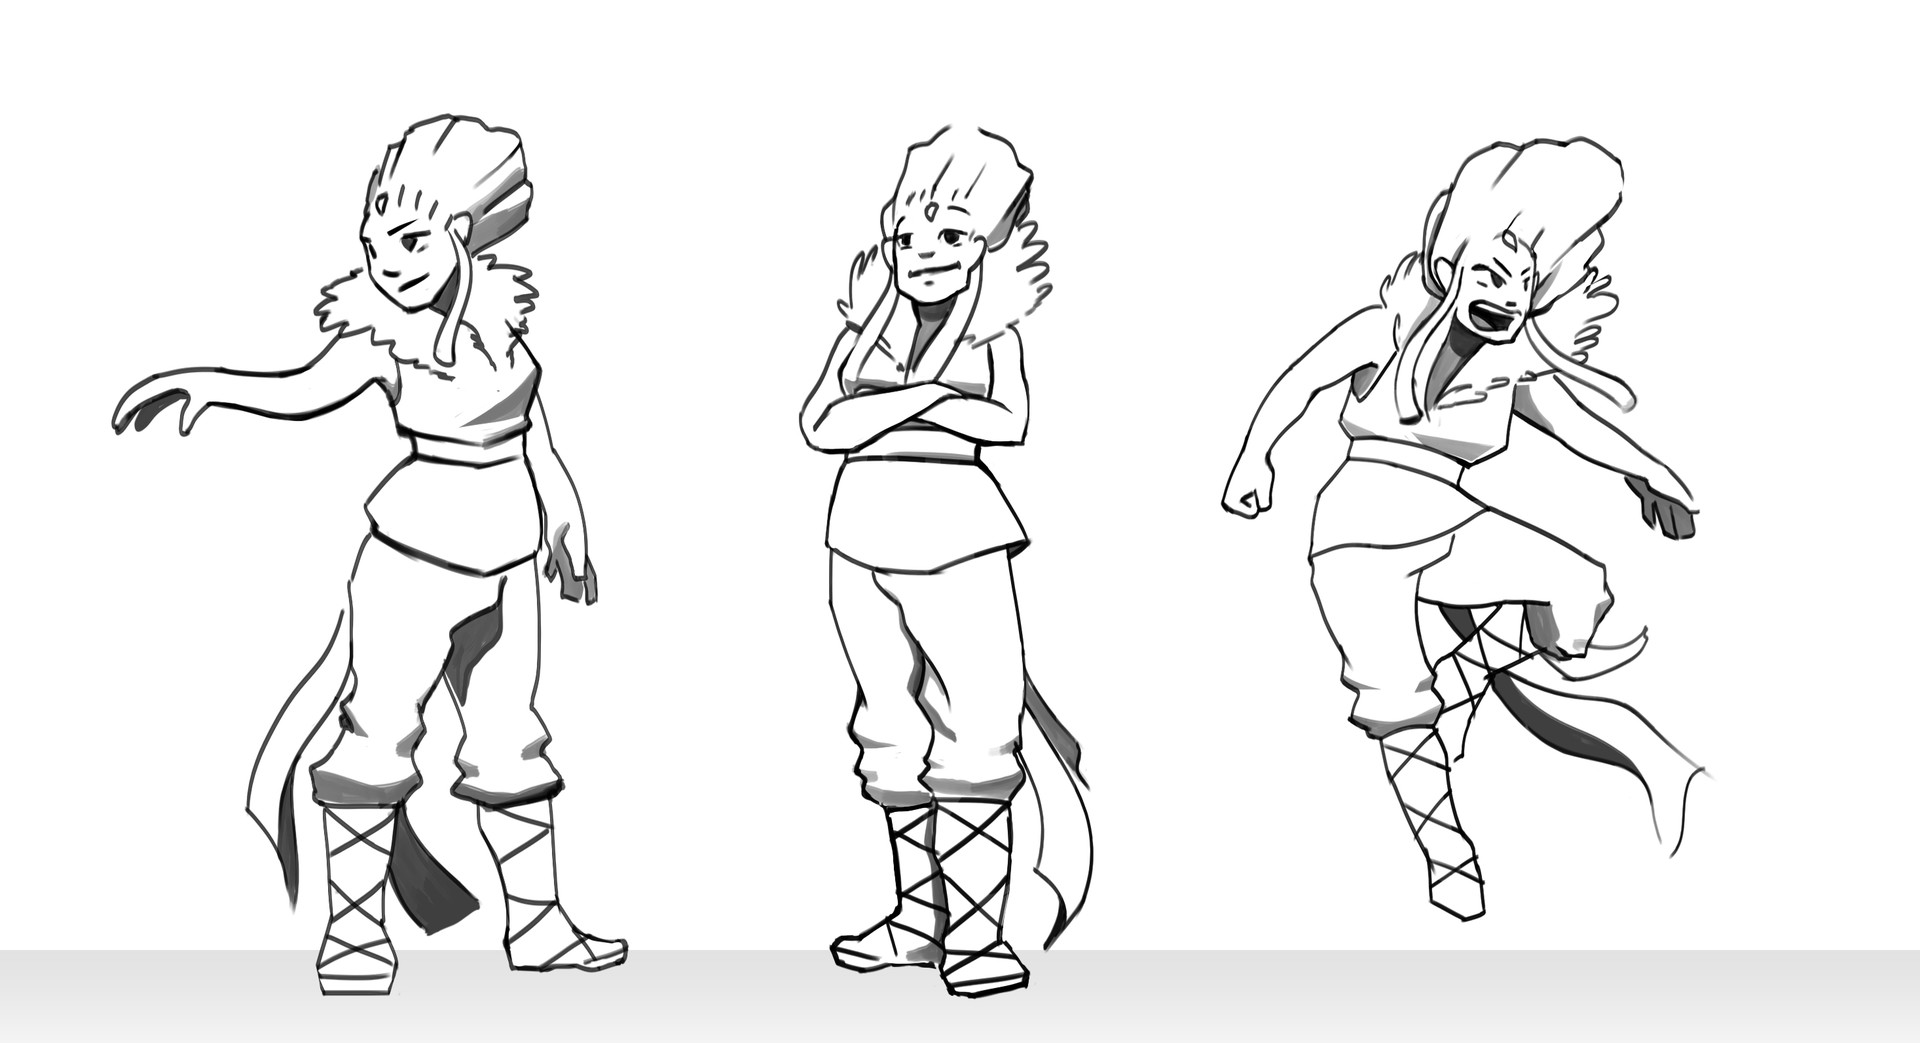 Retake of the main character that I have designed for the game Afterward, in a cartoon style. Working on the attitudes/poses.